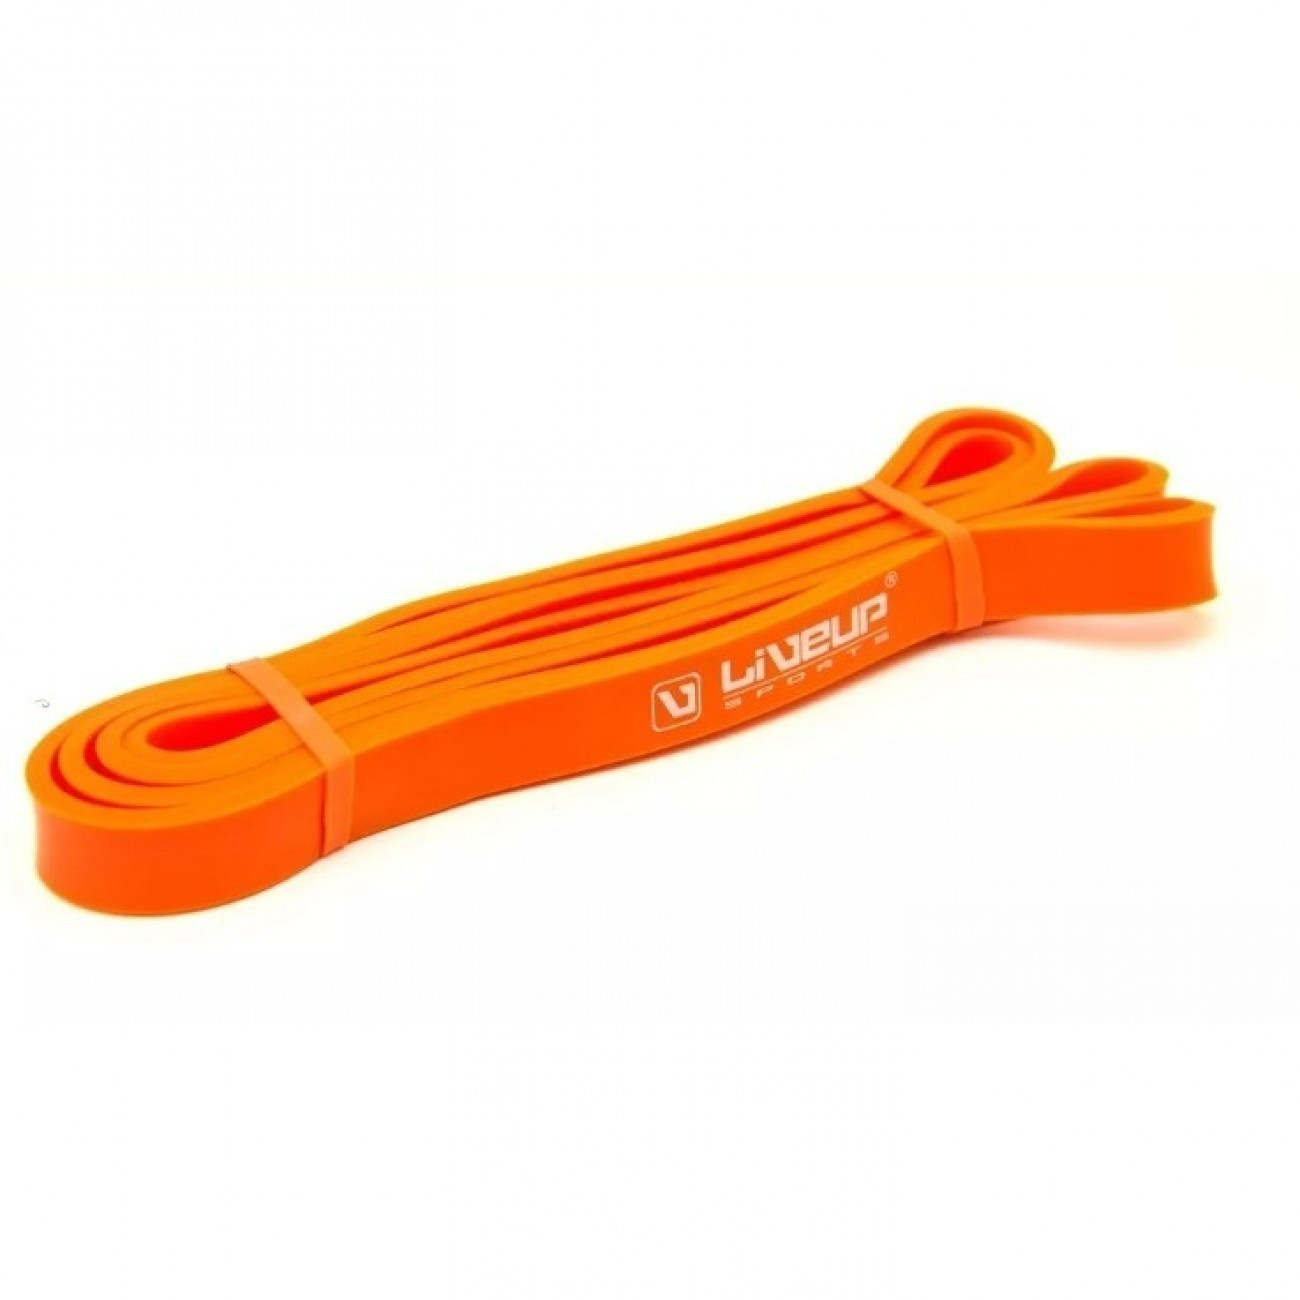 SUPER BAND 2.1 - 2080*4.5*21MM - LARANJA - LIVEUP SPORTS